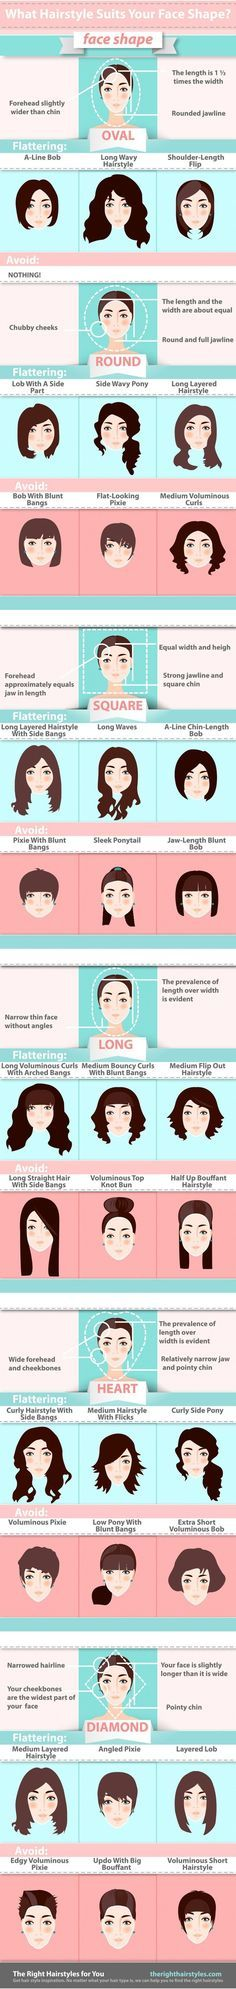 Guide: The Perfect Hairstyle For Your Face Shape   Best Beauty Tips And Fashion Ideas For Women by Makeup Tutorials at http://makeuptutorials.com/perfect-hairstyle-guide-for-your-face-shape/